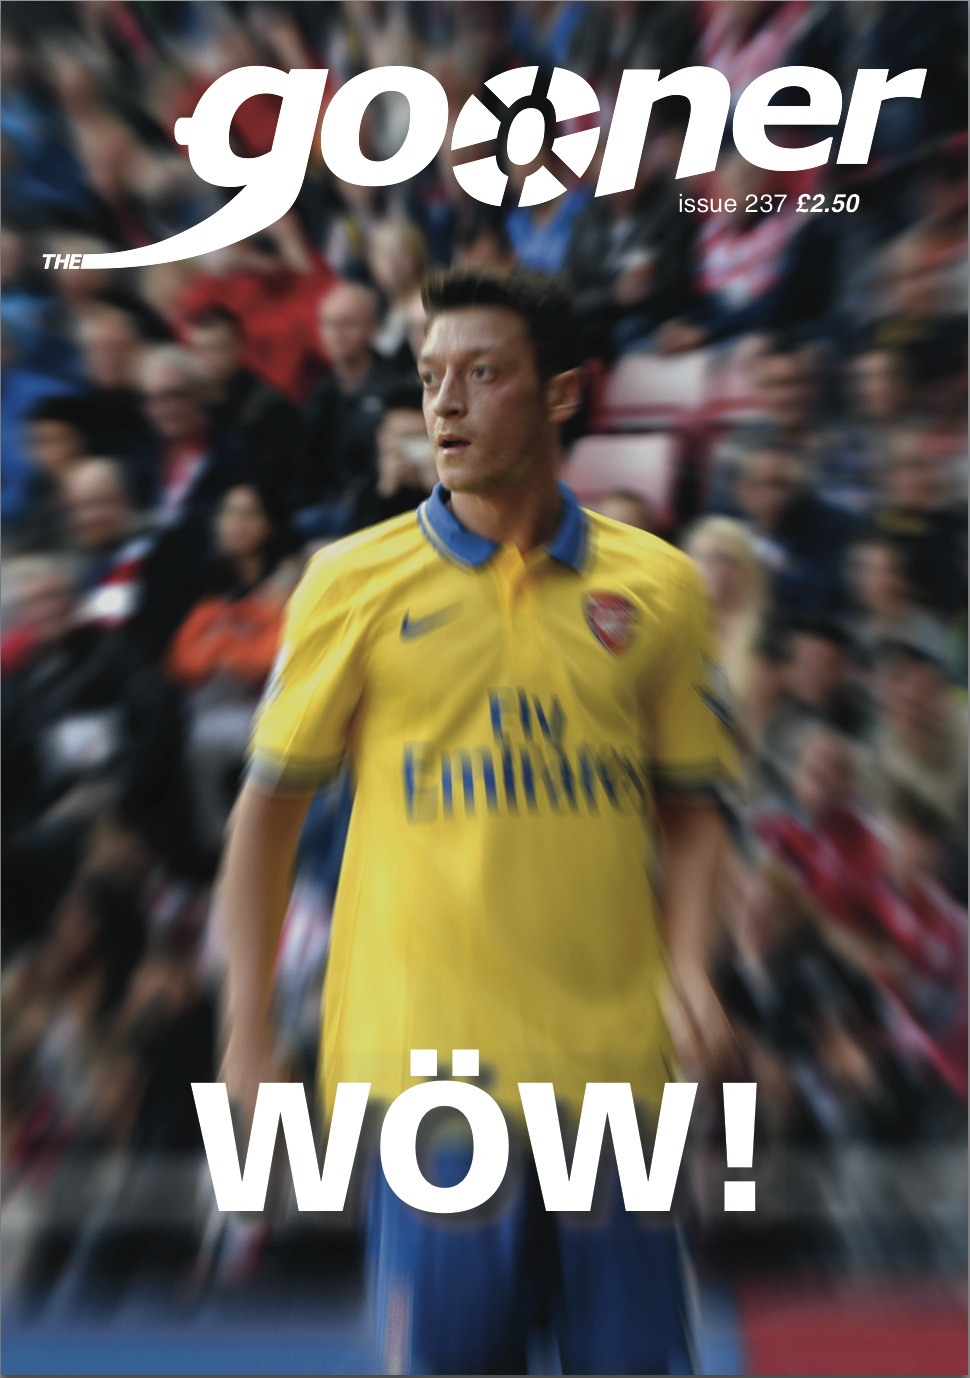 The Gooner - Issue 237